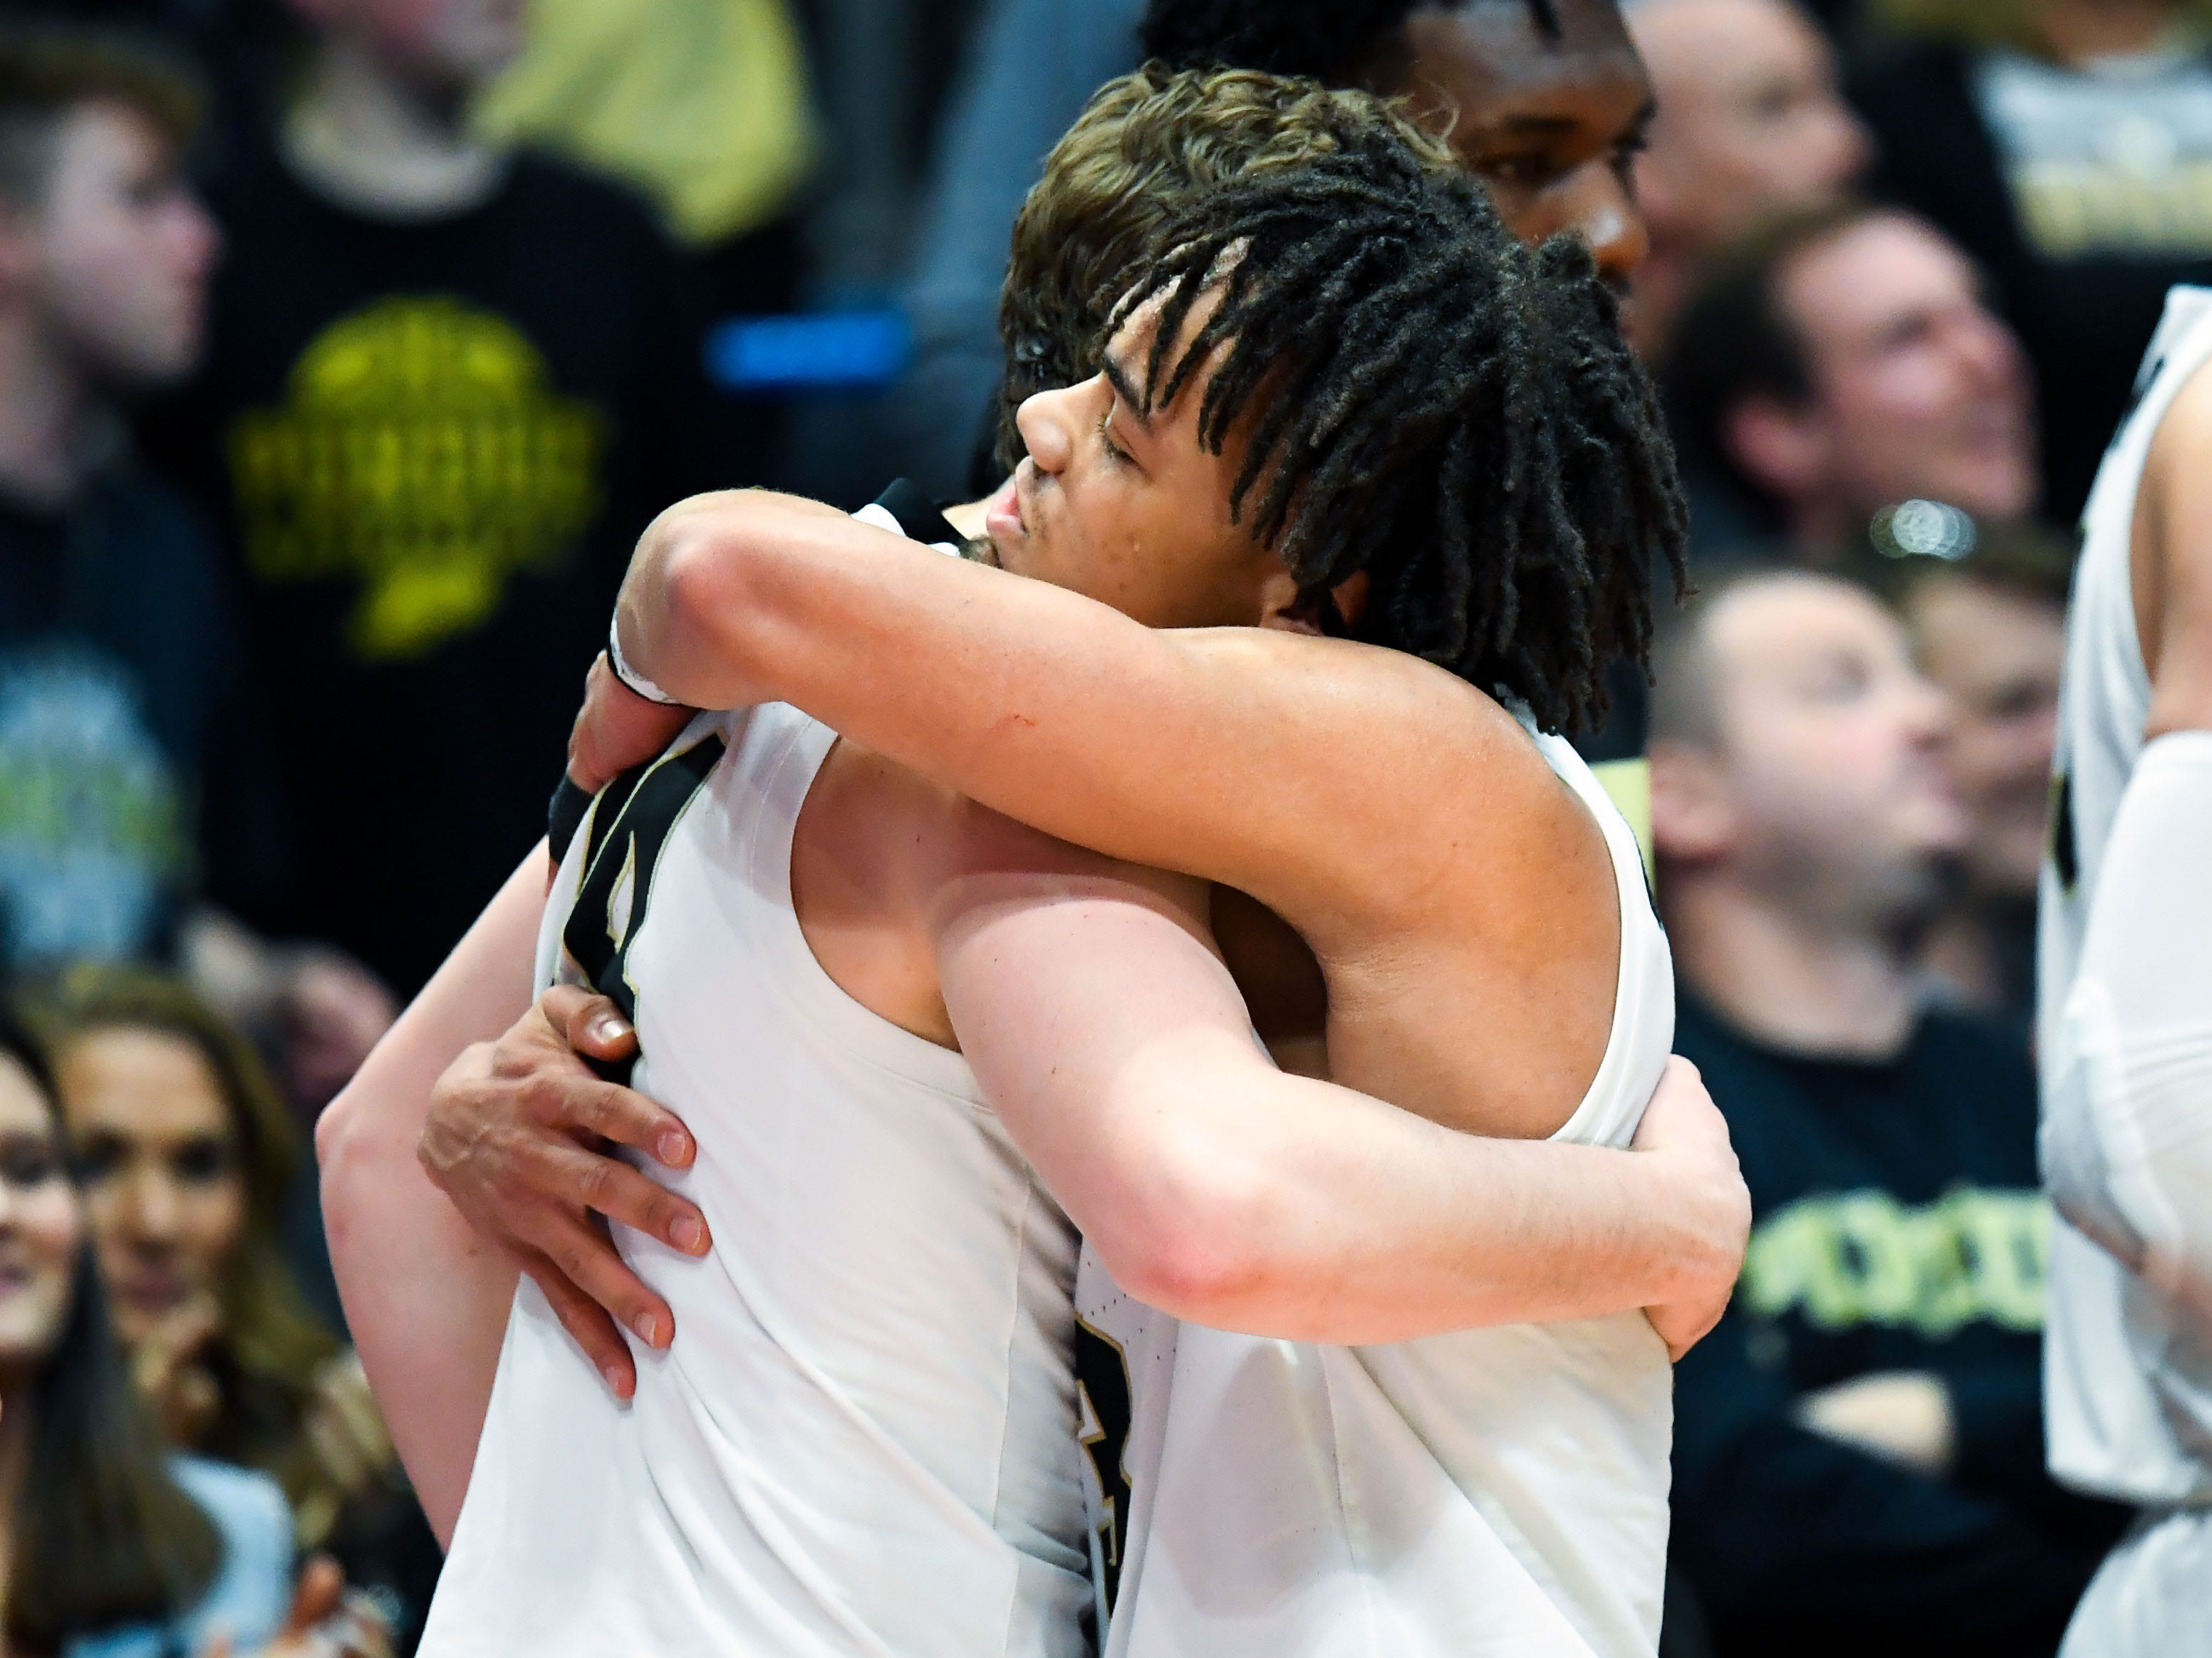 Mar 23, 2019; Hartford, CT, USA; Purdue Boilermakers guard Carsen Edwards (3) hugs guard Ryan Cline (14) after defeating the Villanova Wildcats in the second round of the 2019 NCAA Tournament at XL Center. Mandatory Credit: Robert Deutsch-USA TODAY Sports